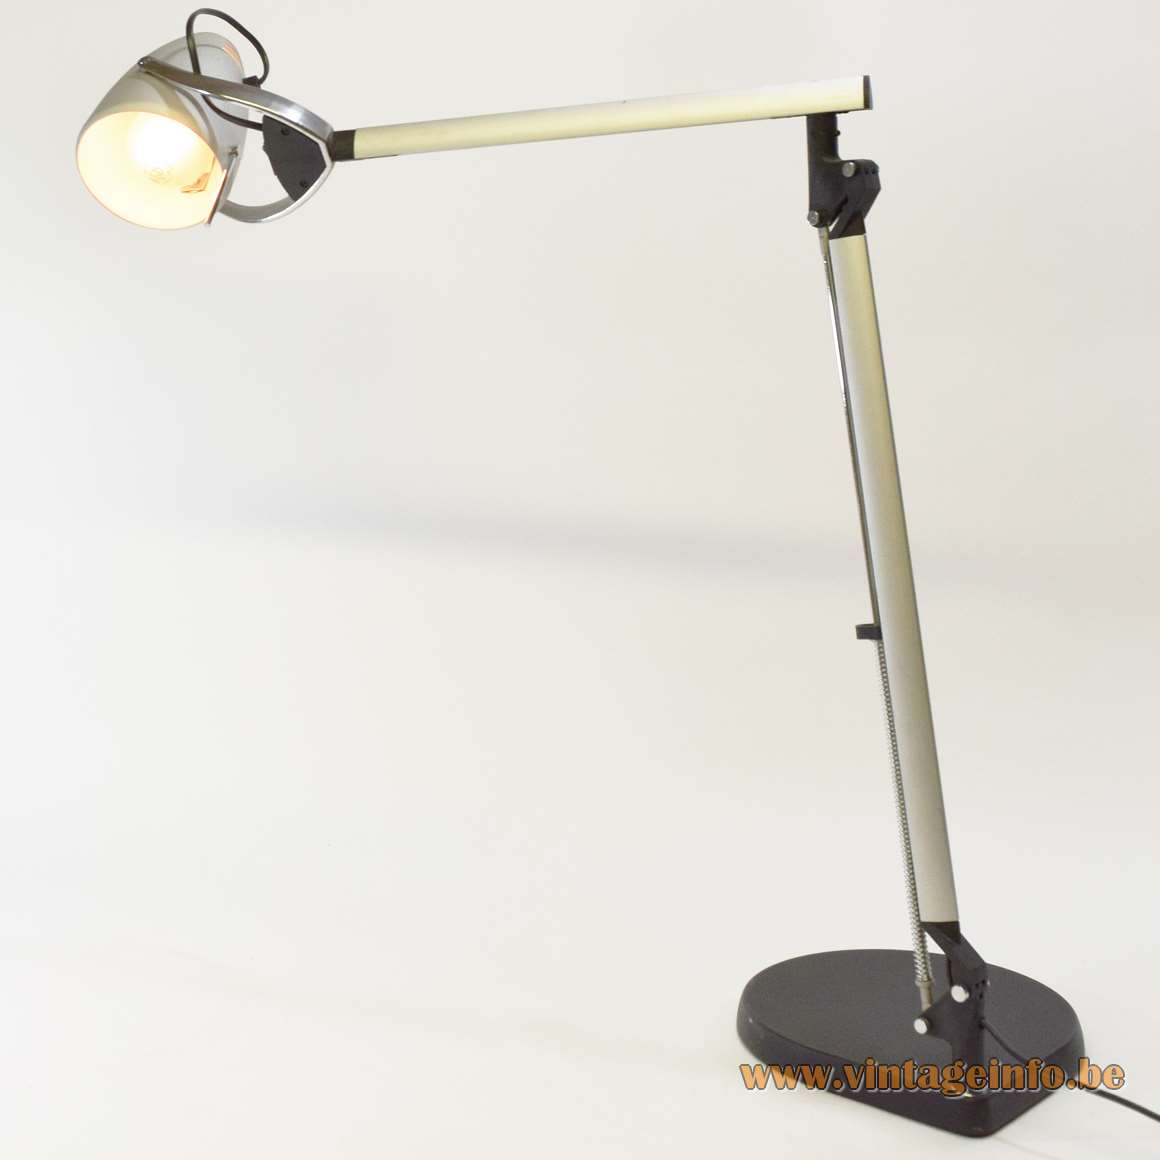 Quattrifolio Boris desk or work lamp 1992 design by Makio Hasuike and Hisham Kulhanek Italy